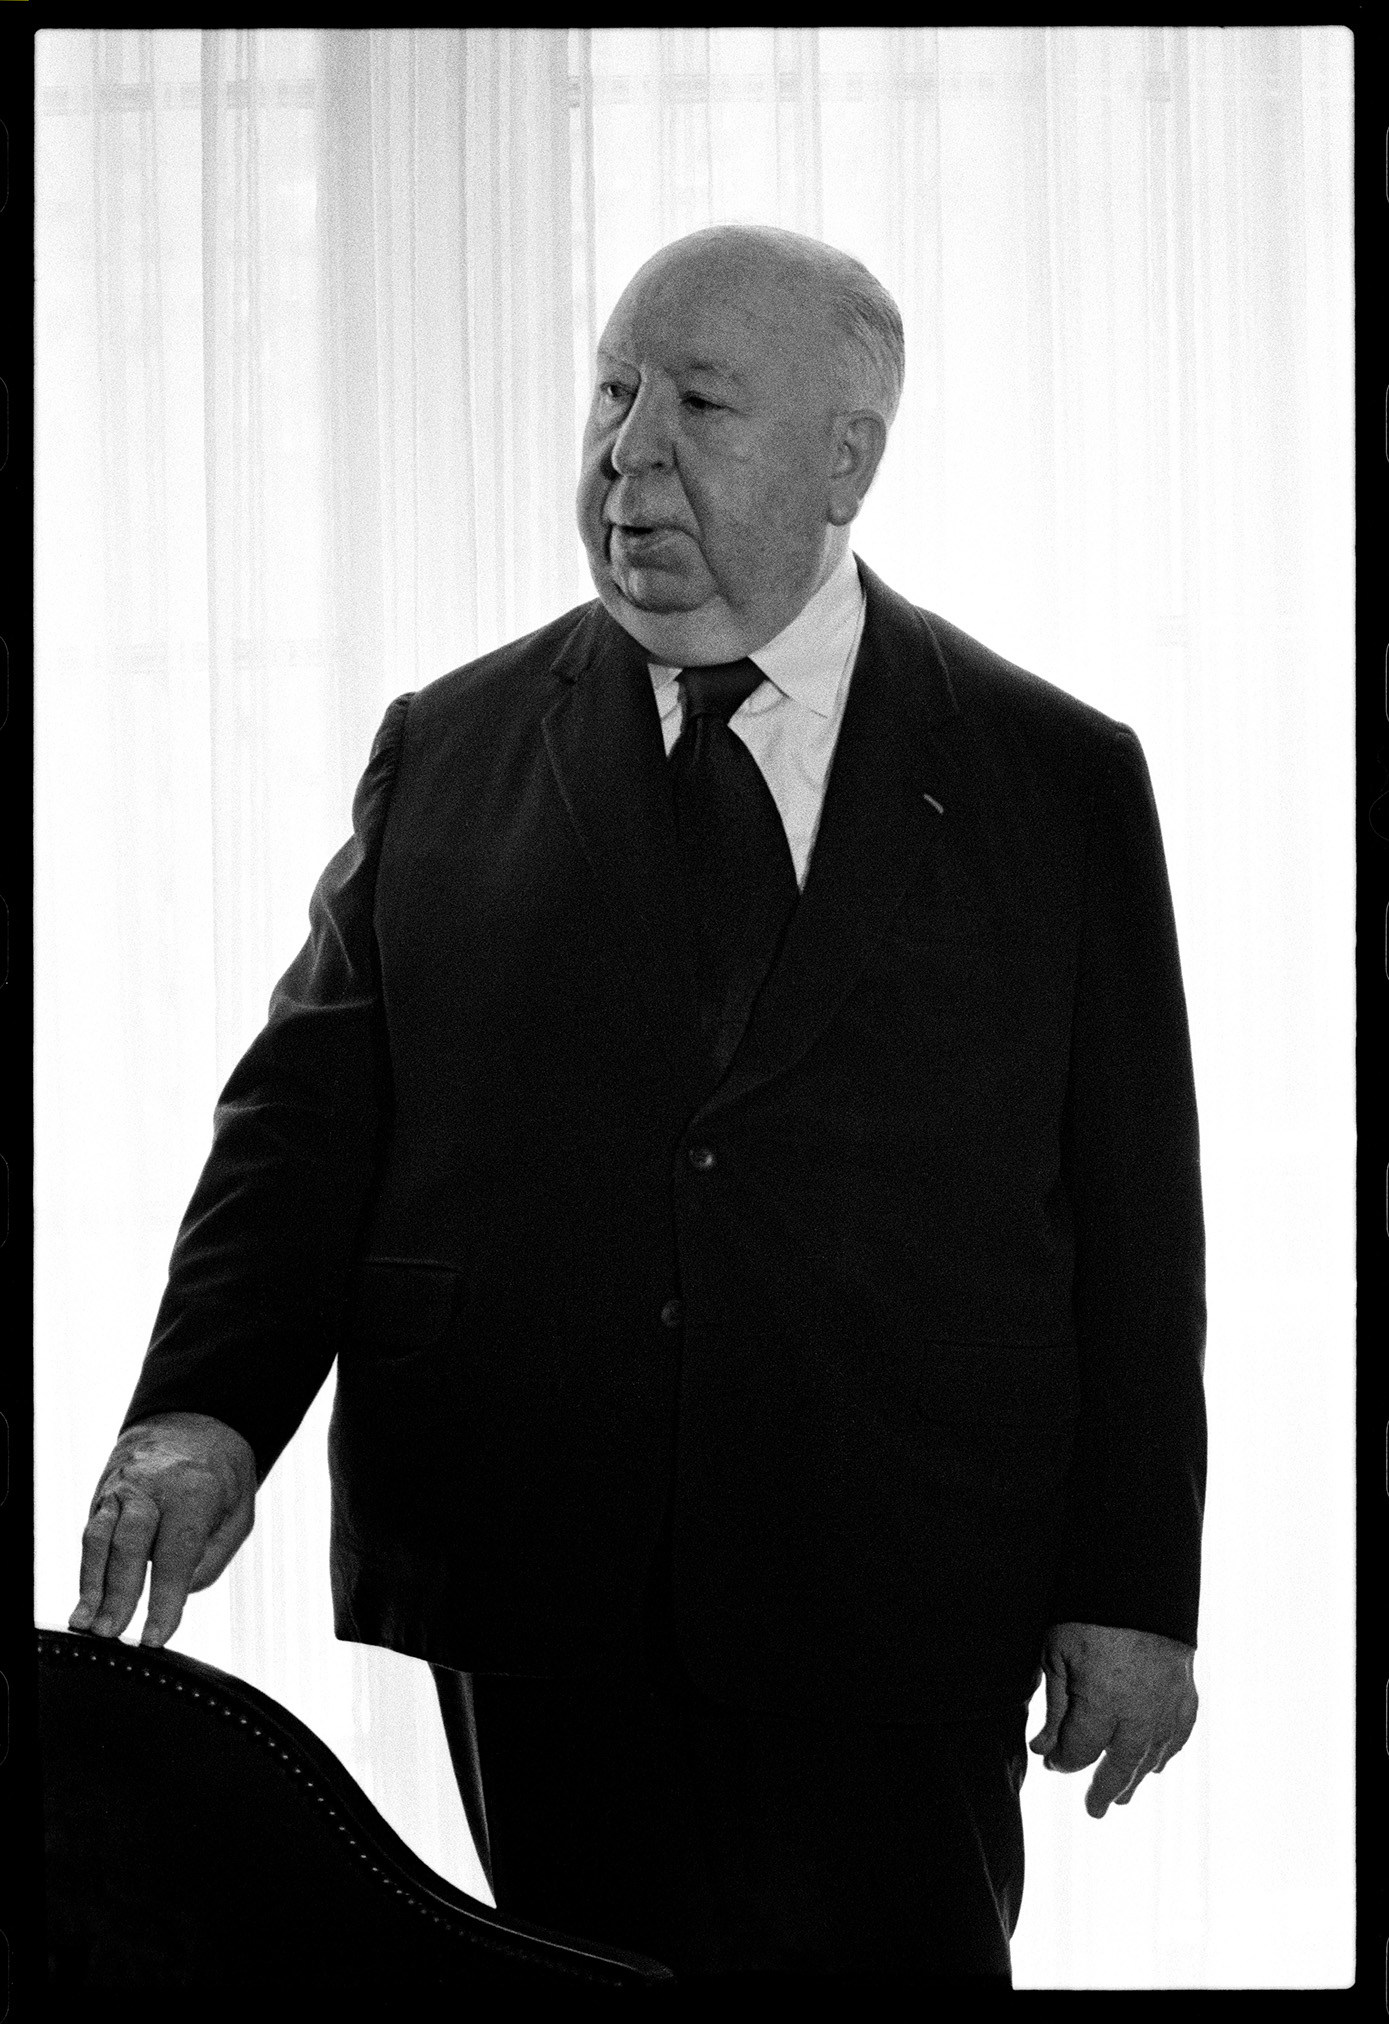 Alfred Hitchcock. Photo: Timothy Greenfield Sanders.